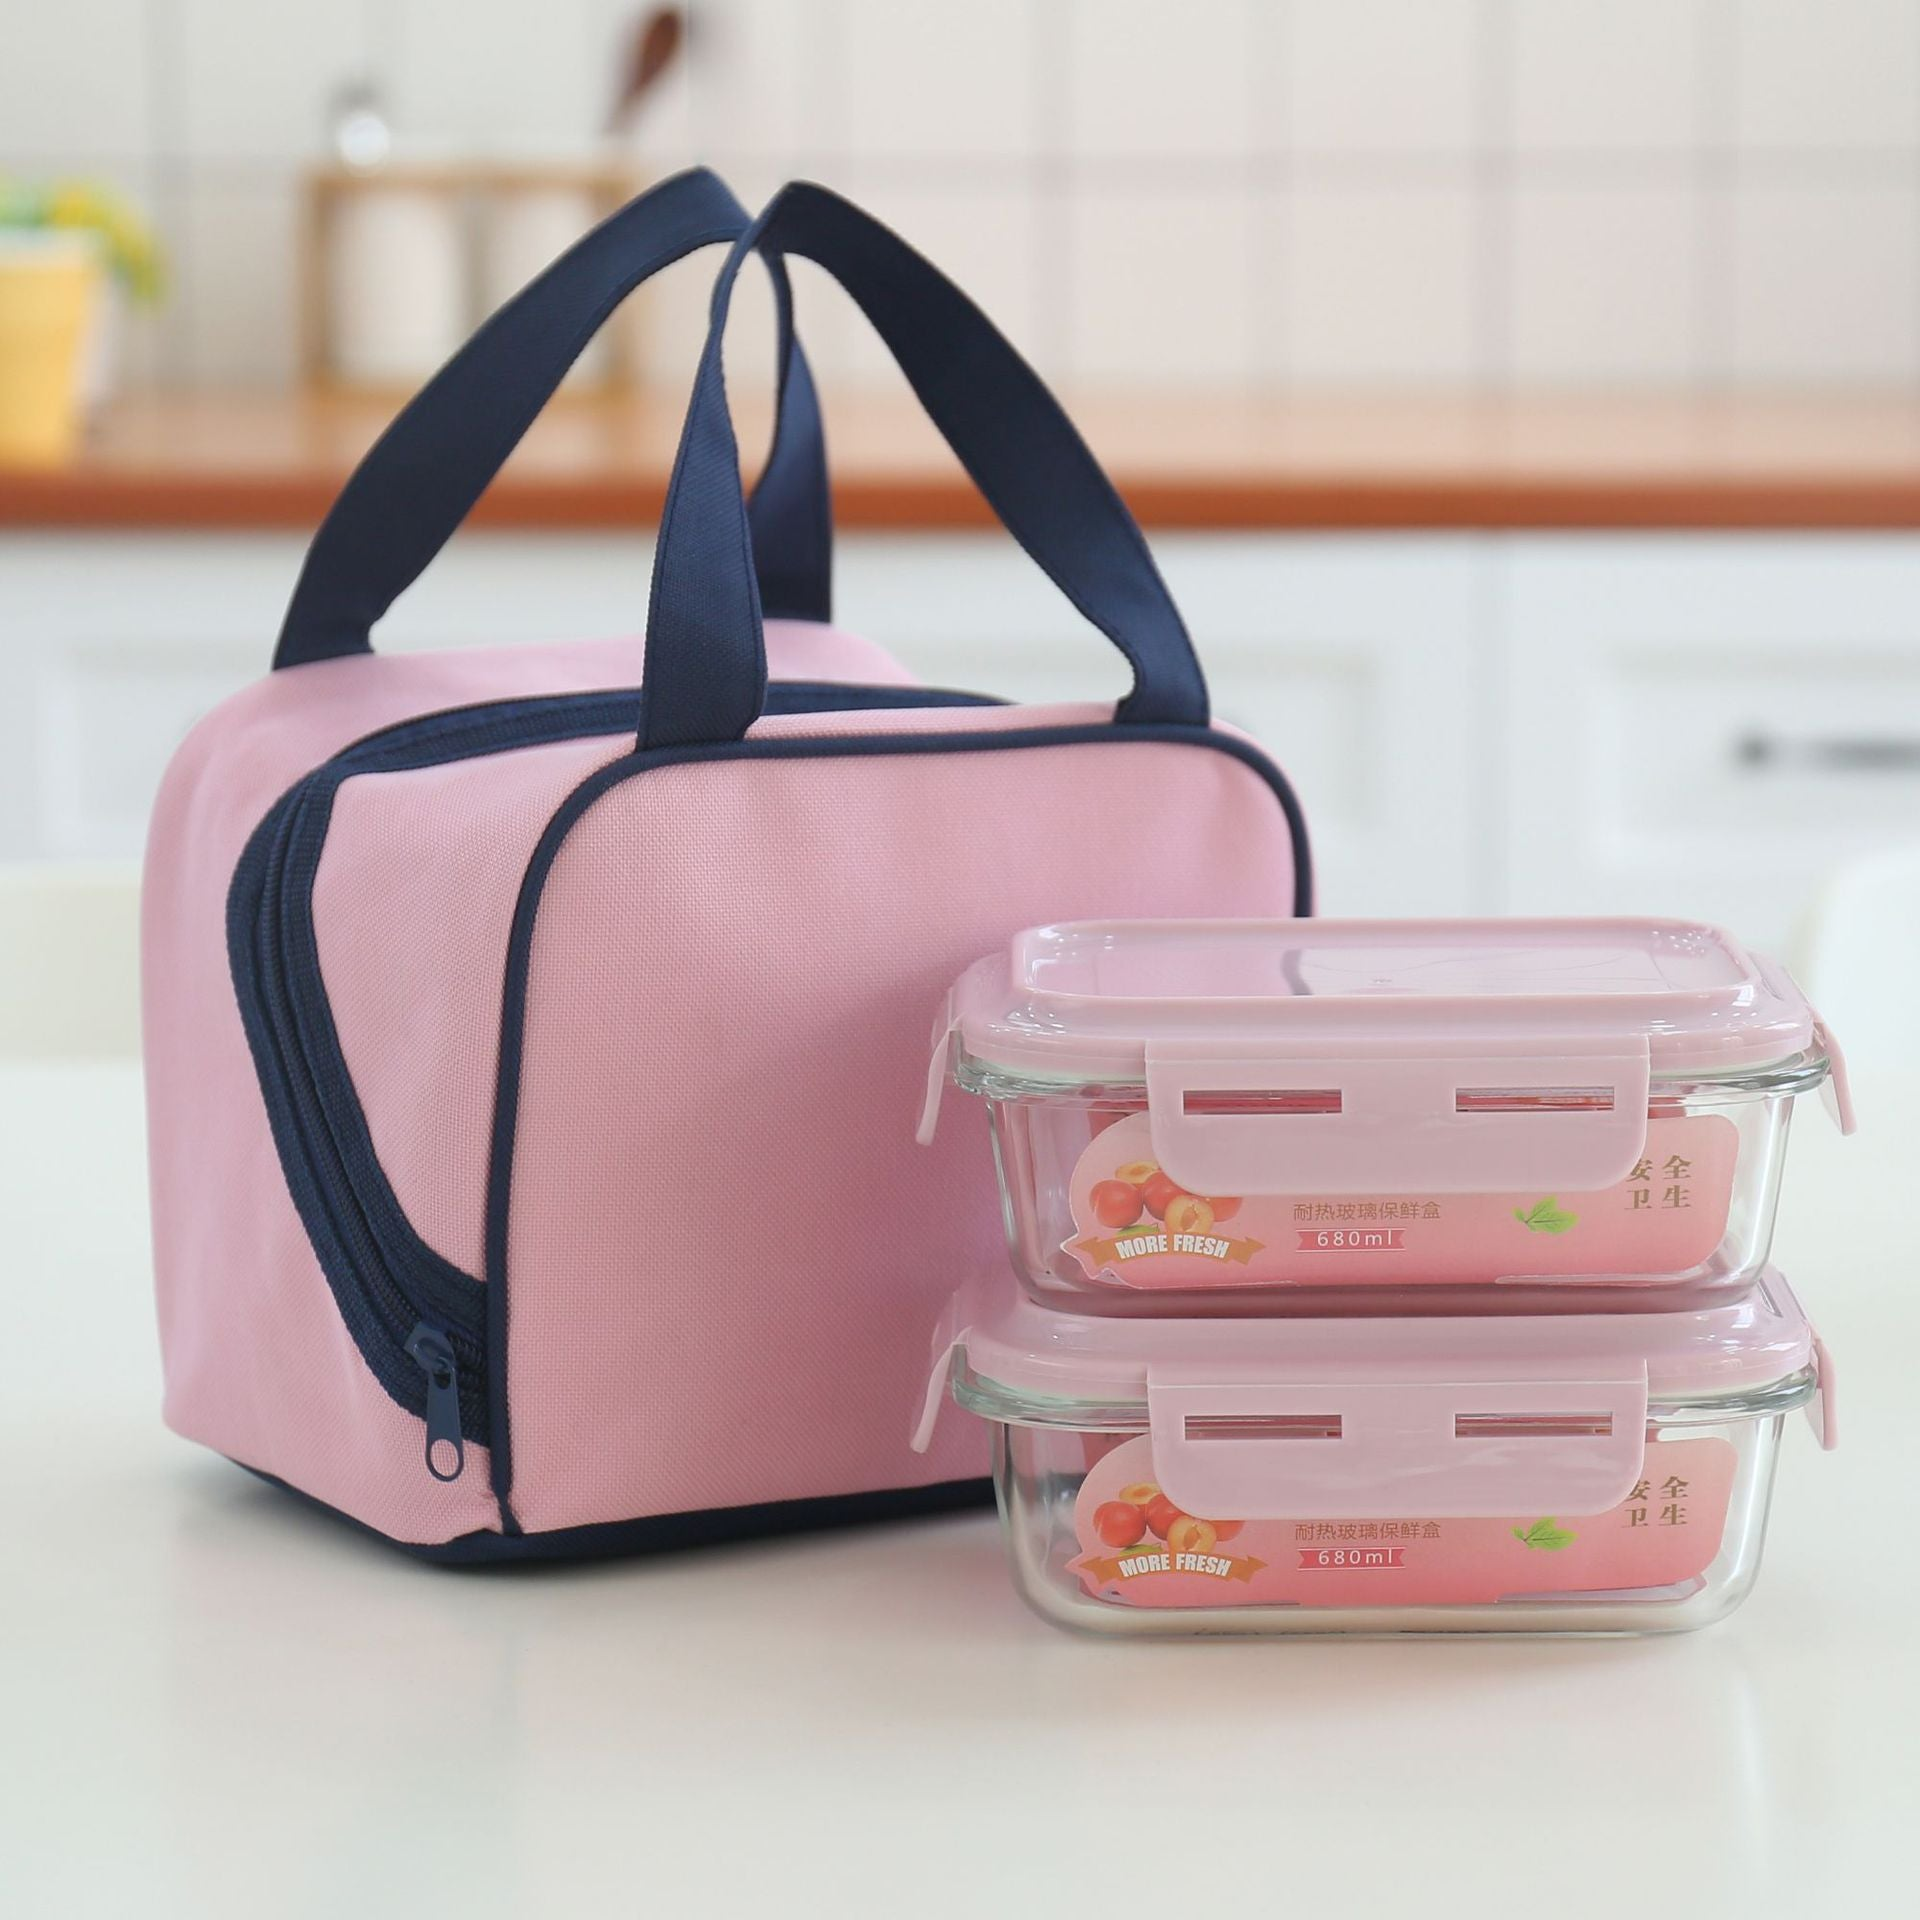 Glass microwave oven lunch box